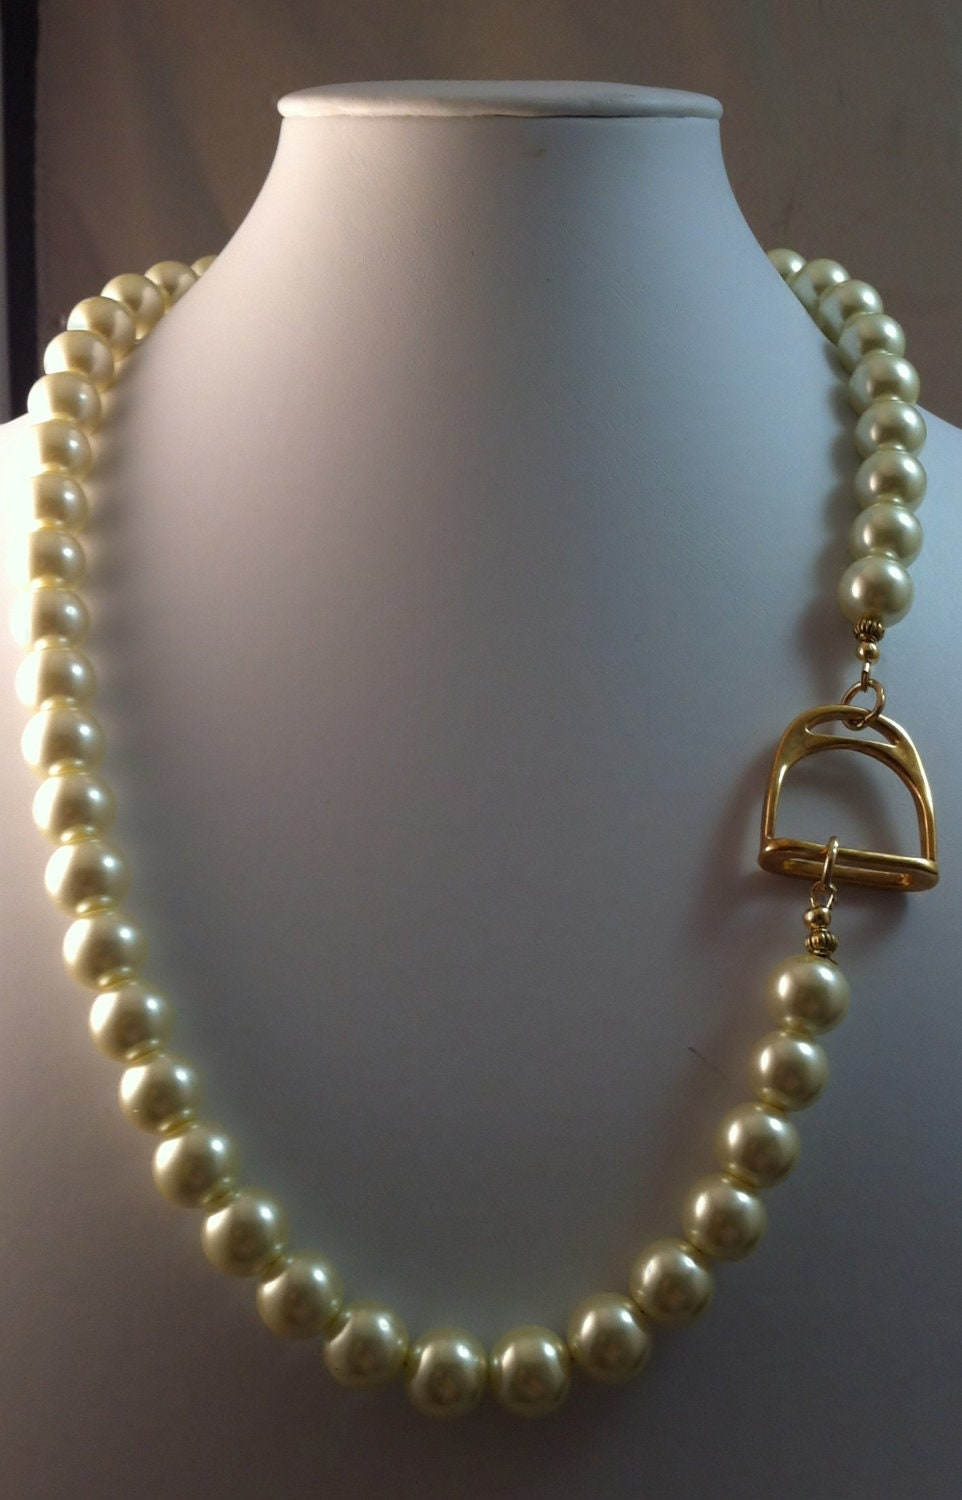 Ivory Pearl And Gold Stirrup Necklace Stirrup And Pearl. Jewellery Making Necklace. Dinner Necklace. Santa Maria Necklace. Kindergarten Necklace. Bedouin Necklace. Square Necklace. Keep Collective Necklace. Medicine Bag Necklace